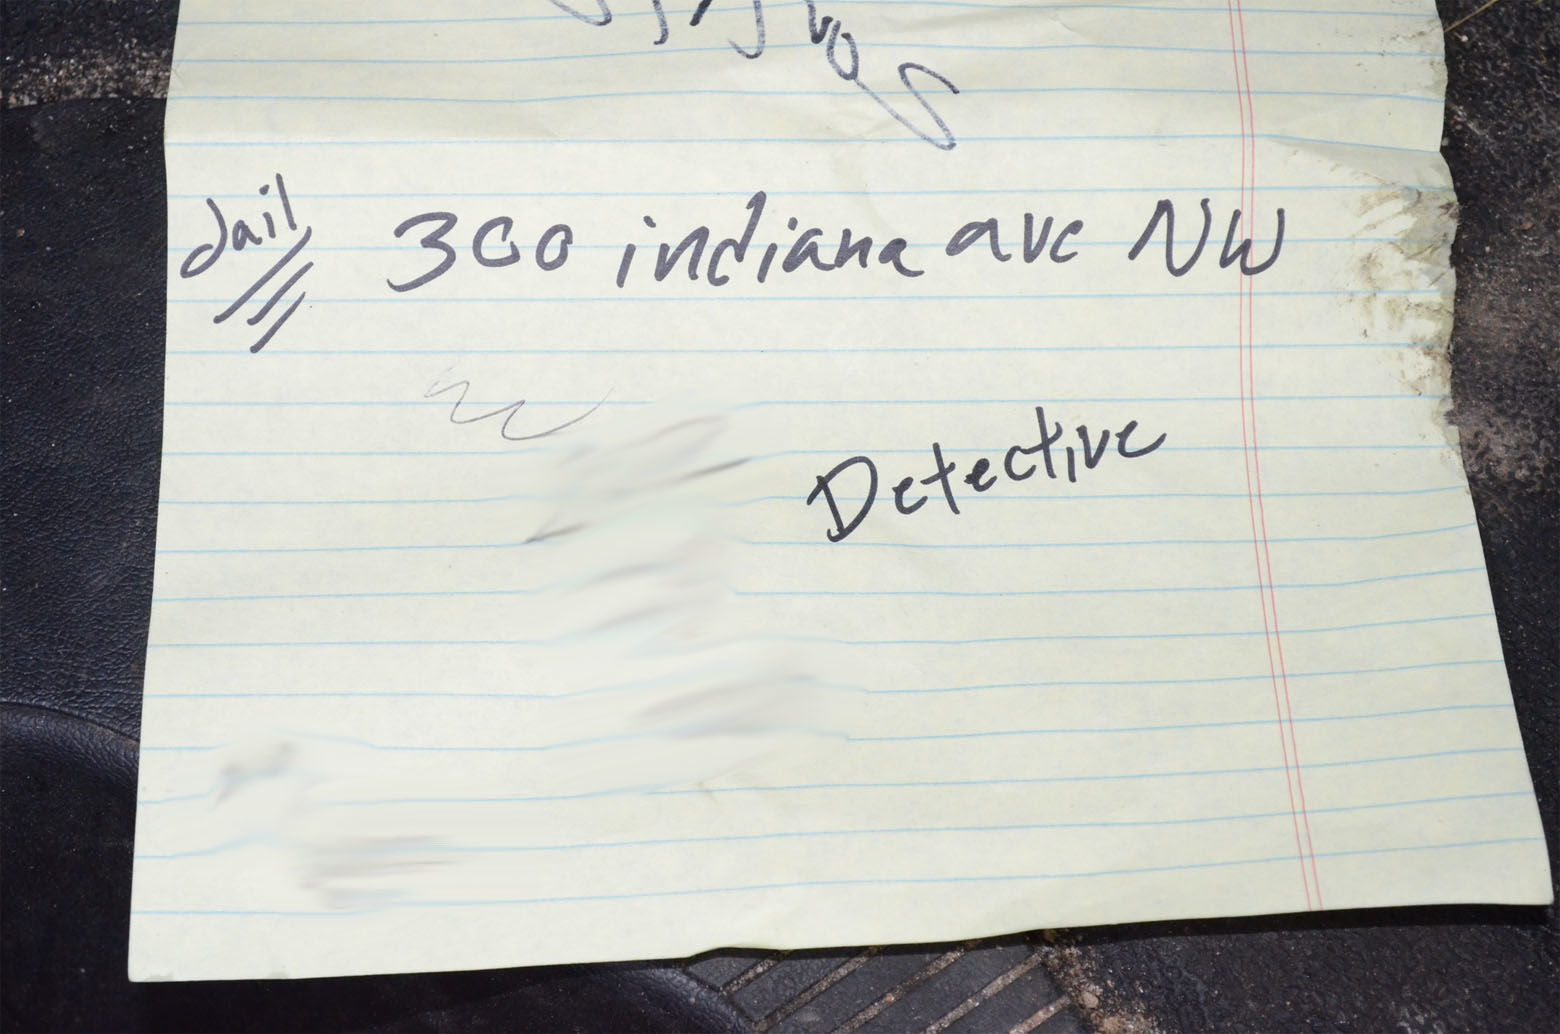 This piece of paper was found by police the night Daron Wint was arrested. Darrell Wint, Daron Wint's younger brother, testified he was on the phone with police helping to turn him in when their vehicles were swarmed by U.S. Marshals. The scrap of paper contains the address for the D.C. jail.  A phone number scribbled next to the word detective (blurred out in this photograph) was the phone number for D.C. Det. Jeff Owens, the lead detective investigating the killings of the Savopoulos family and Vera Figueroa. (Courtesy U.S. Attorney's Office for D.C.)